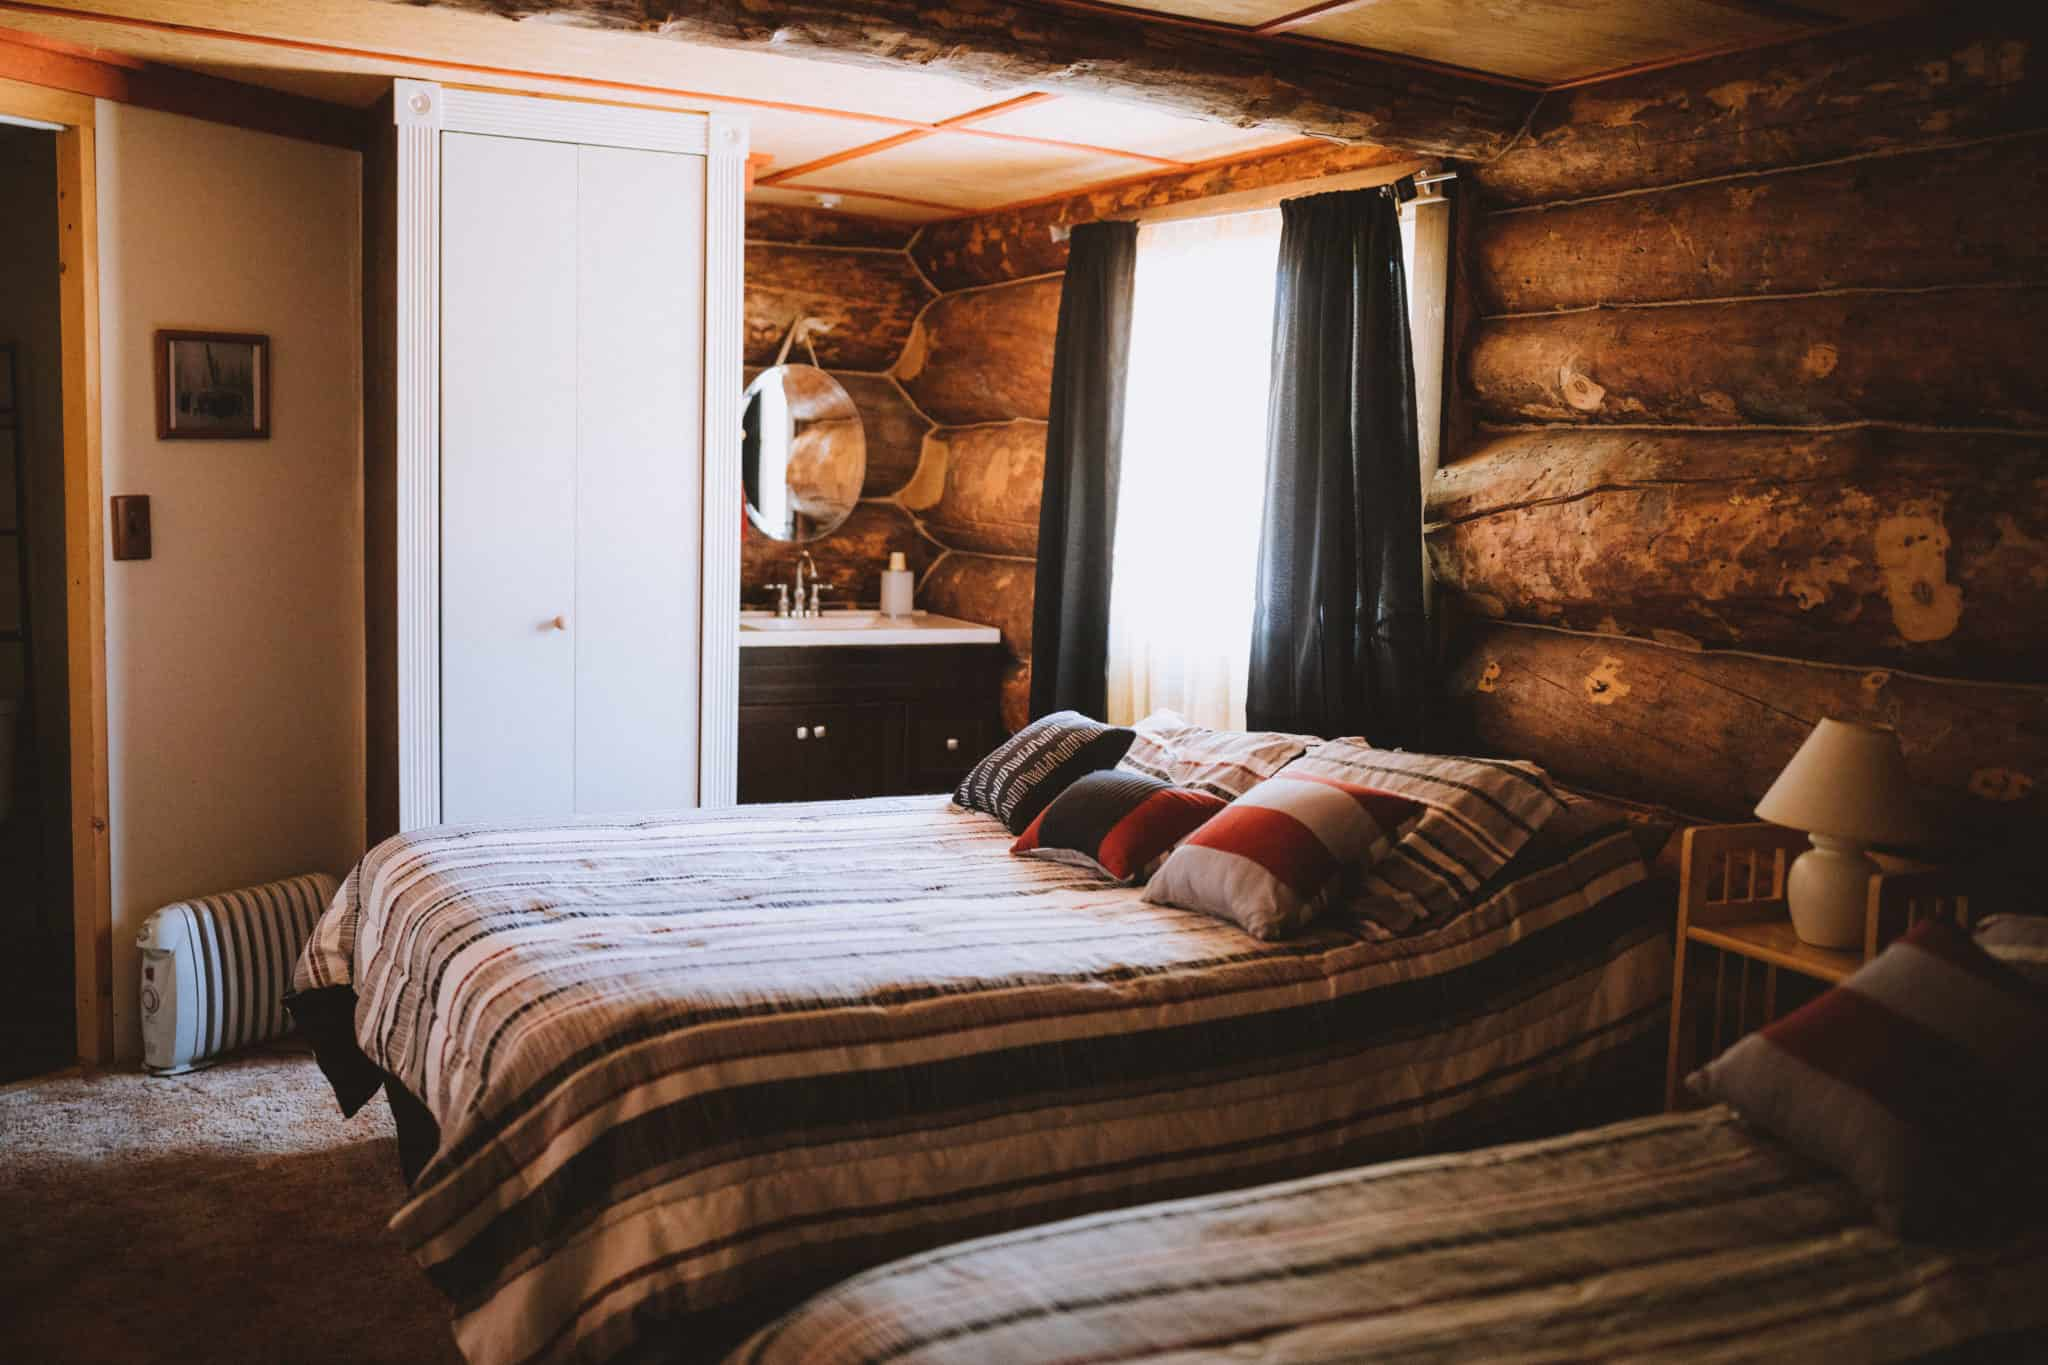 Things To Do In Fairbanks - Northern Sky Lodge